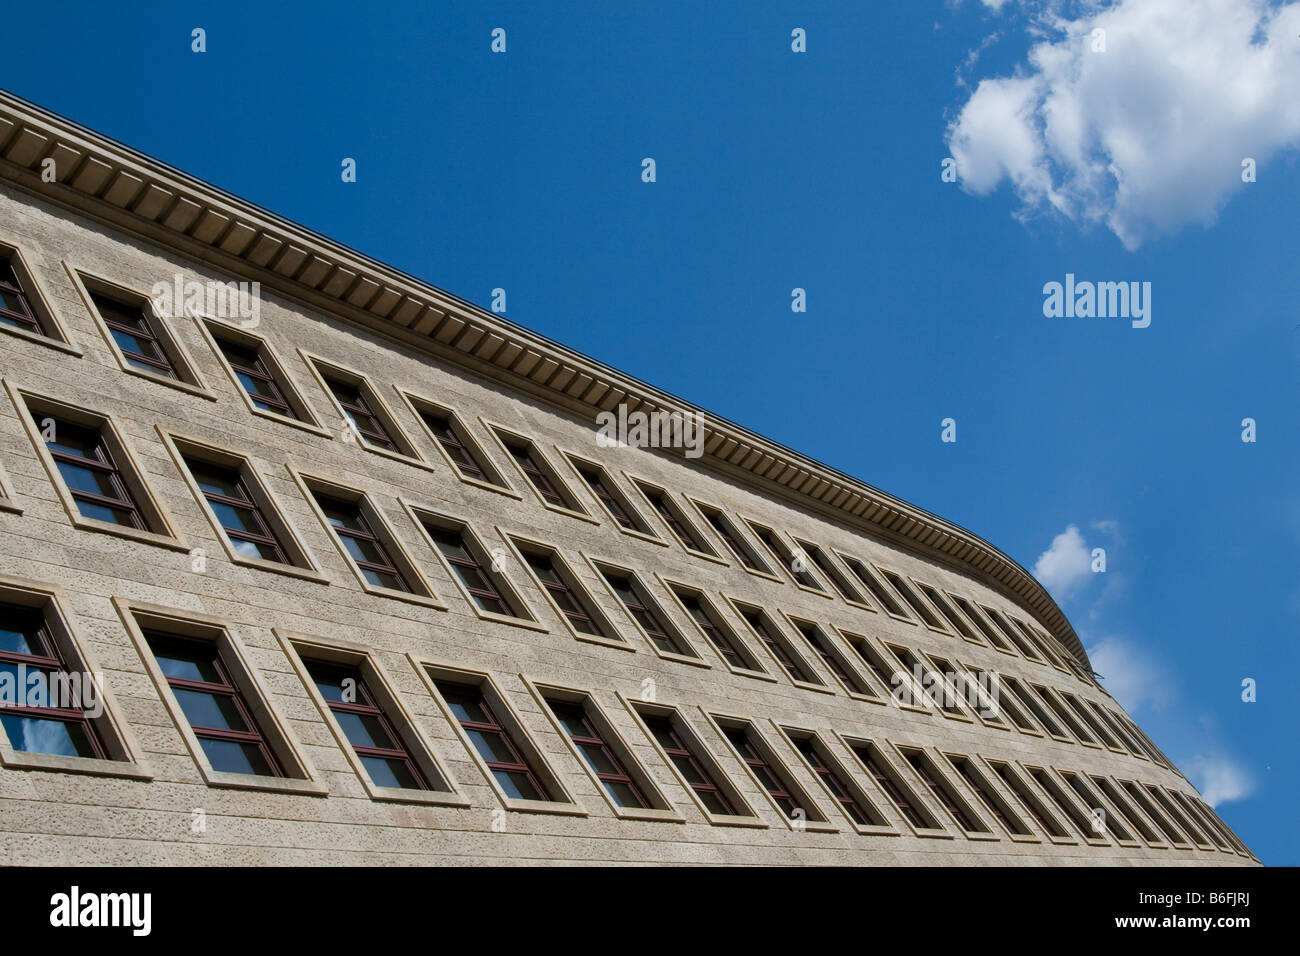 Office building, partial view, Berlin, Germany, Europe - Stock Image